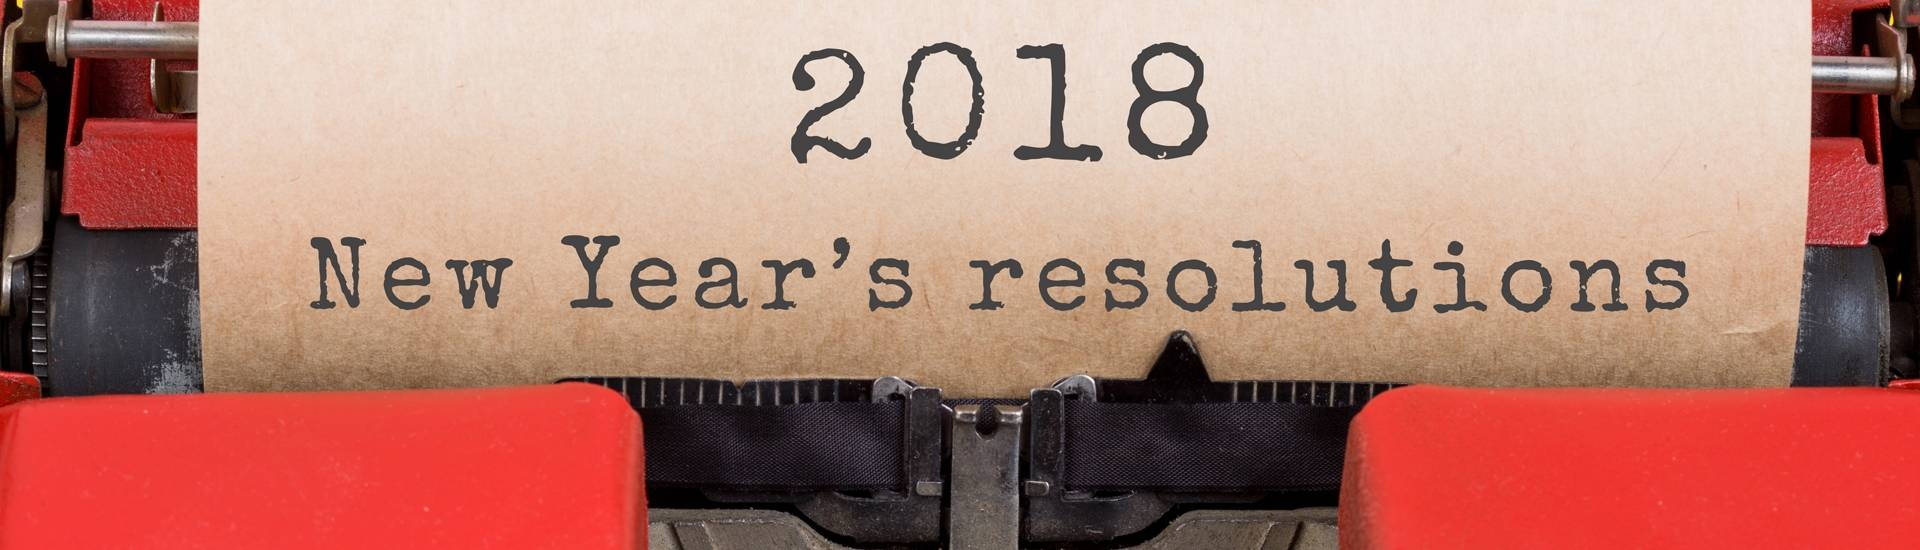 A Year of Resolutions